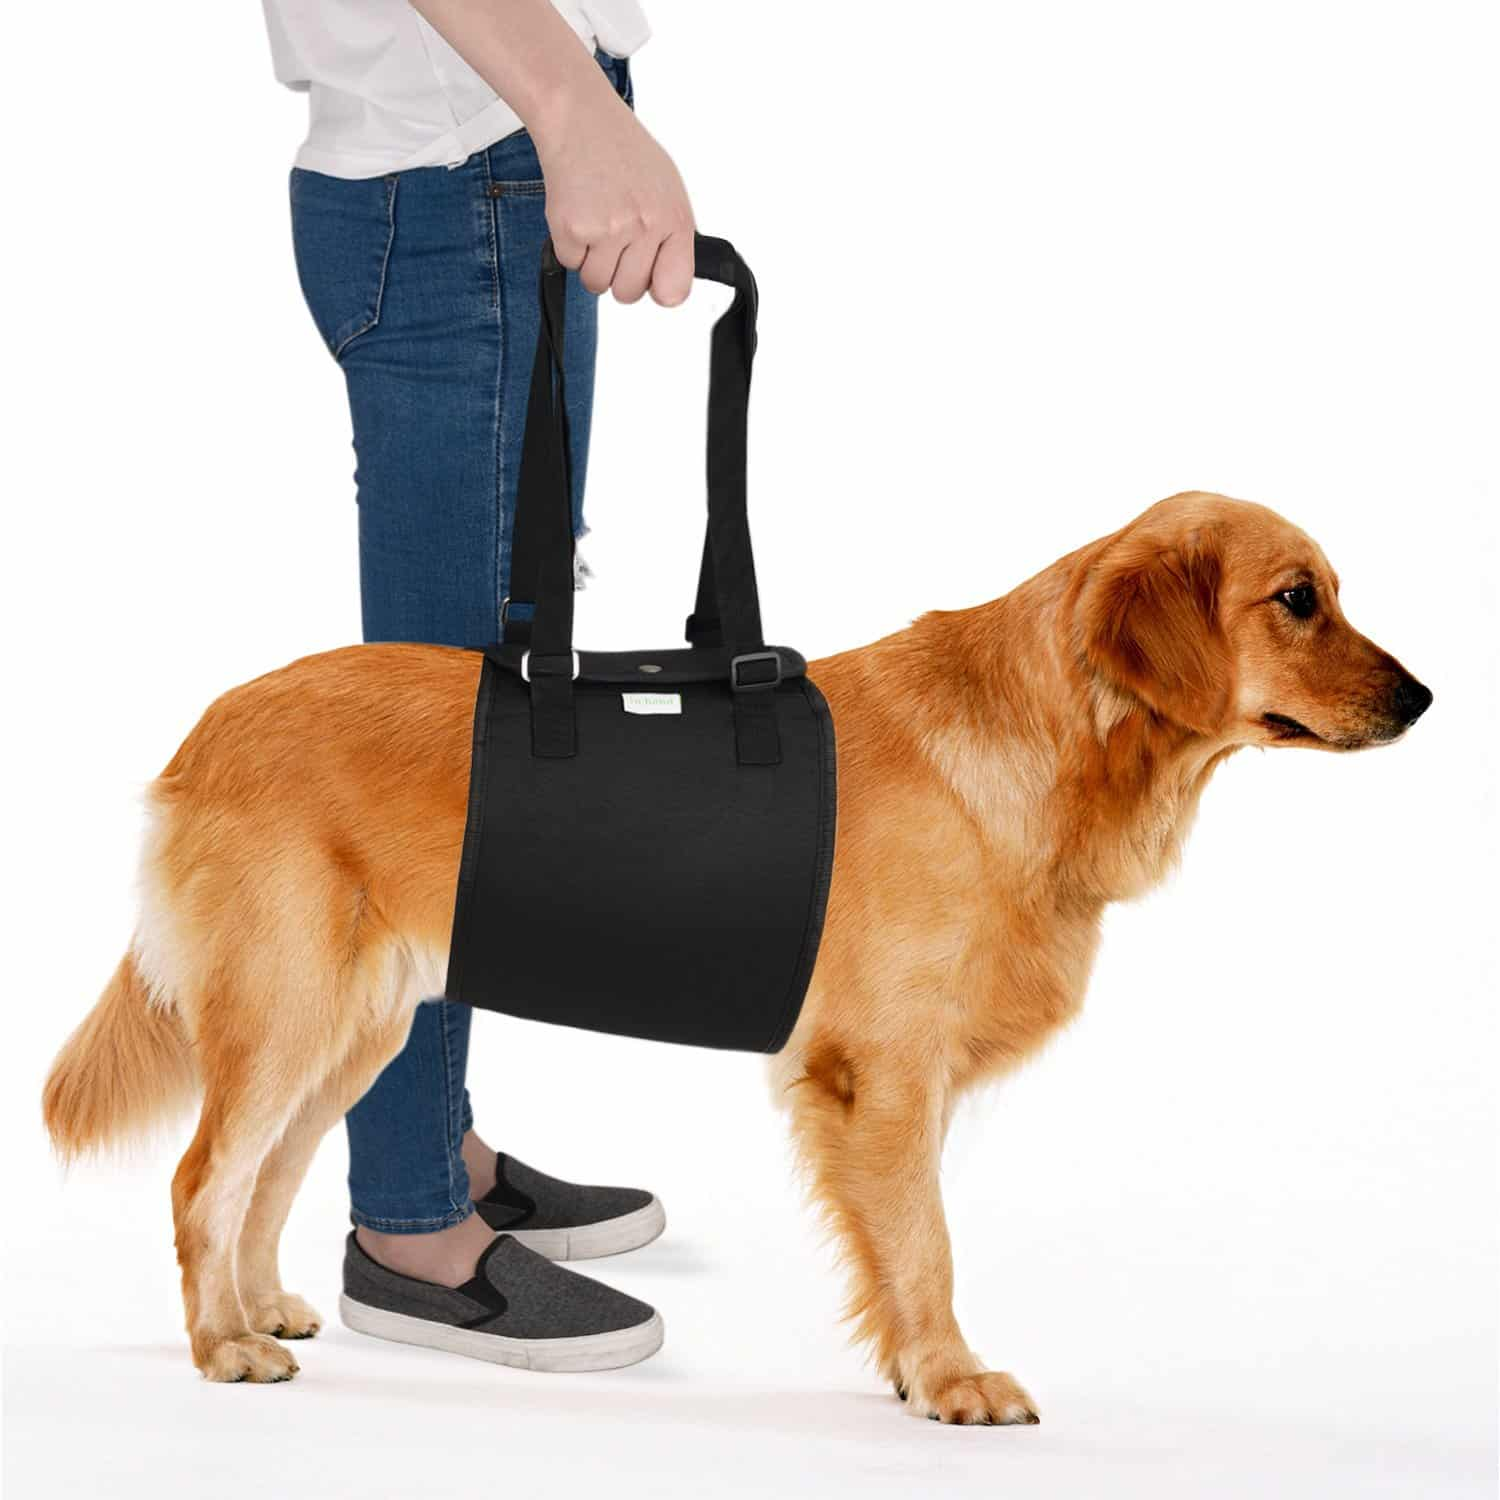 IN HAND Dog Support Harness